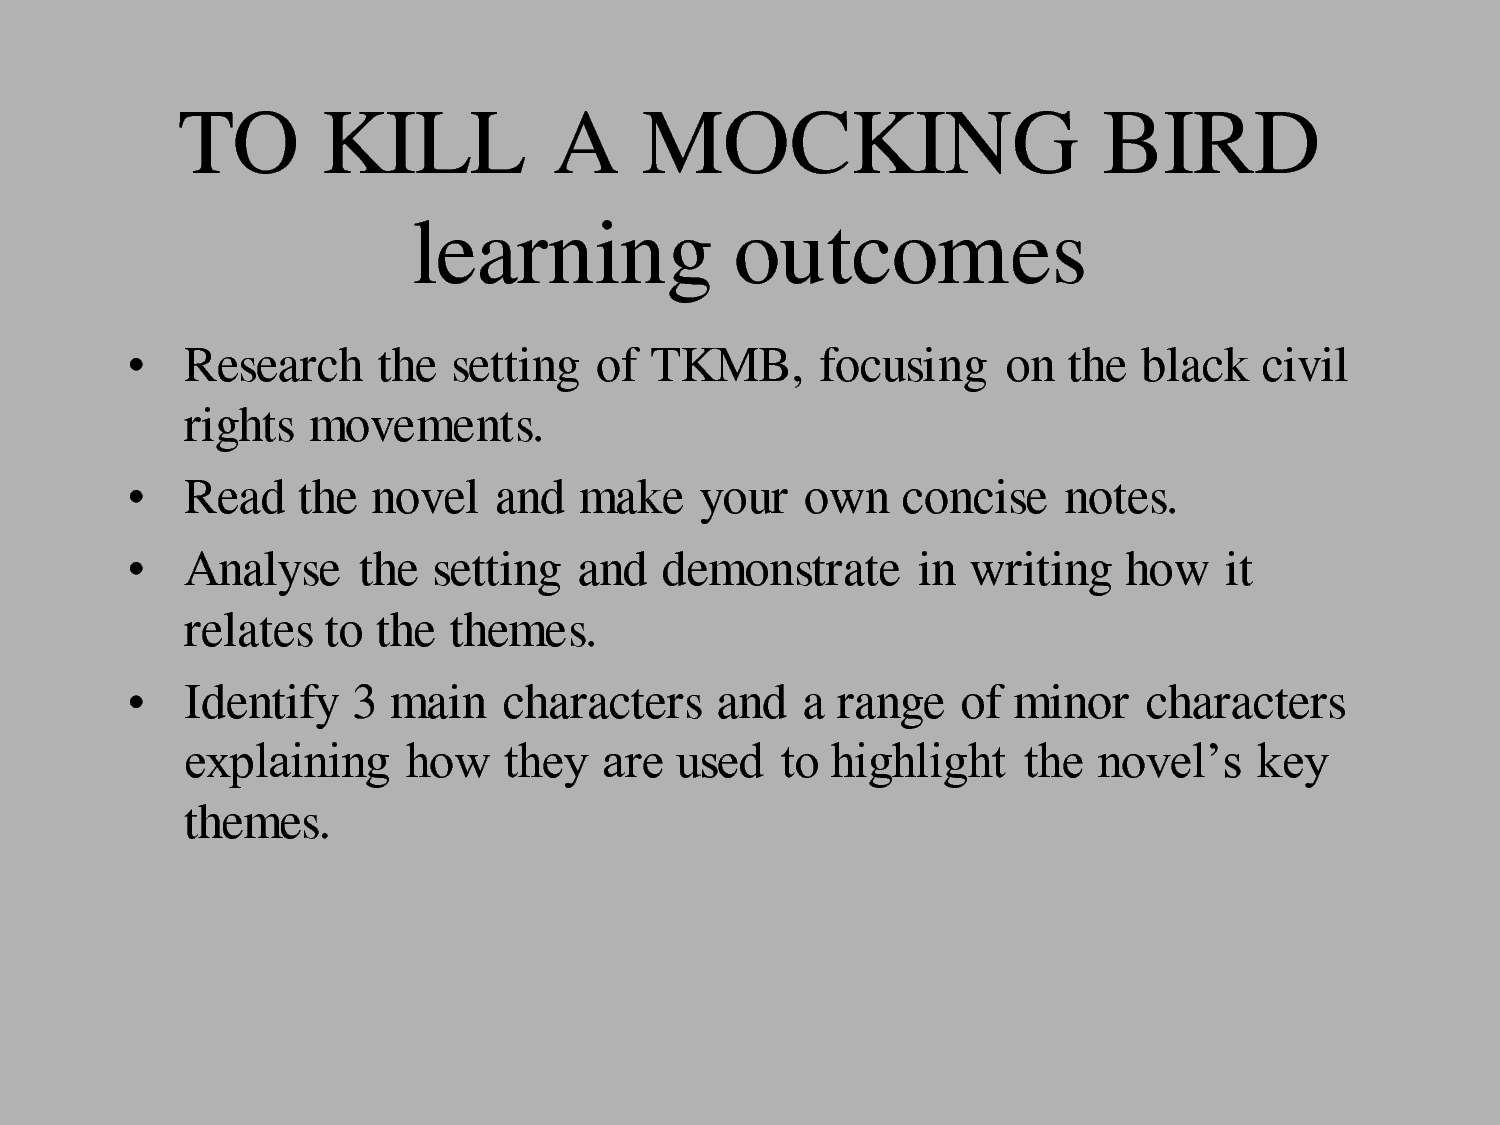 integrity in to kill a mockingbird To kill a mockingbird by harper lee was written in the 1950s and published mid-1960 we shall explore the plot, characters and themes in the book the symbolism relied on by the author shall be addressed according to its relevance to the plot.